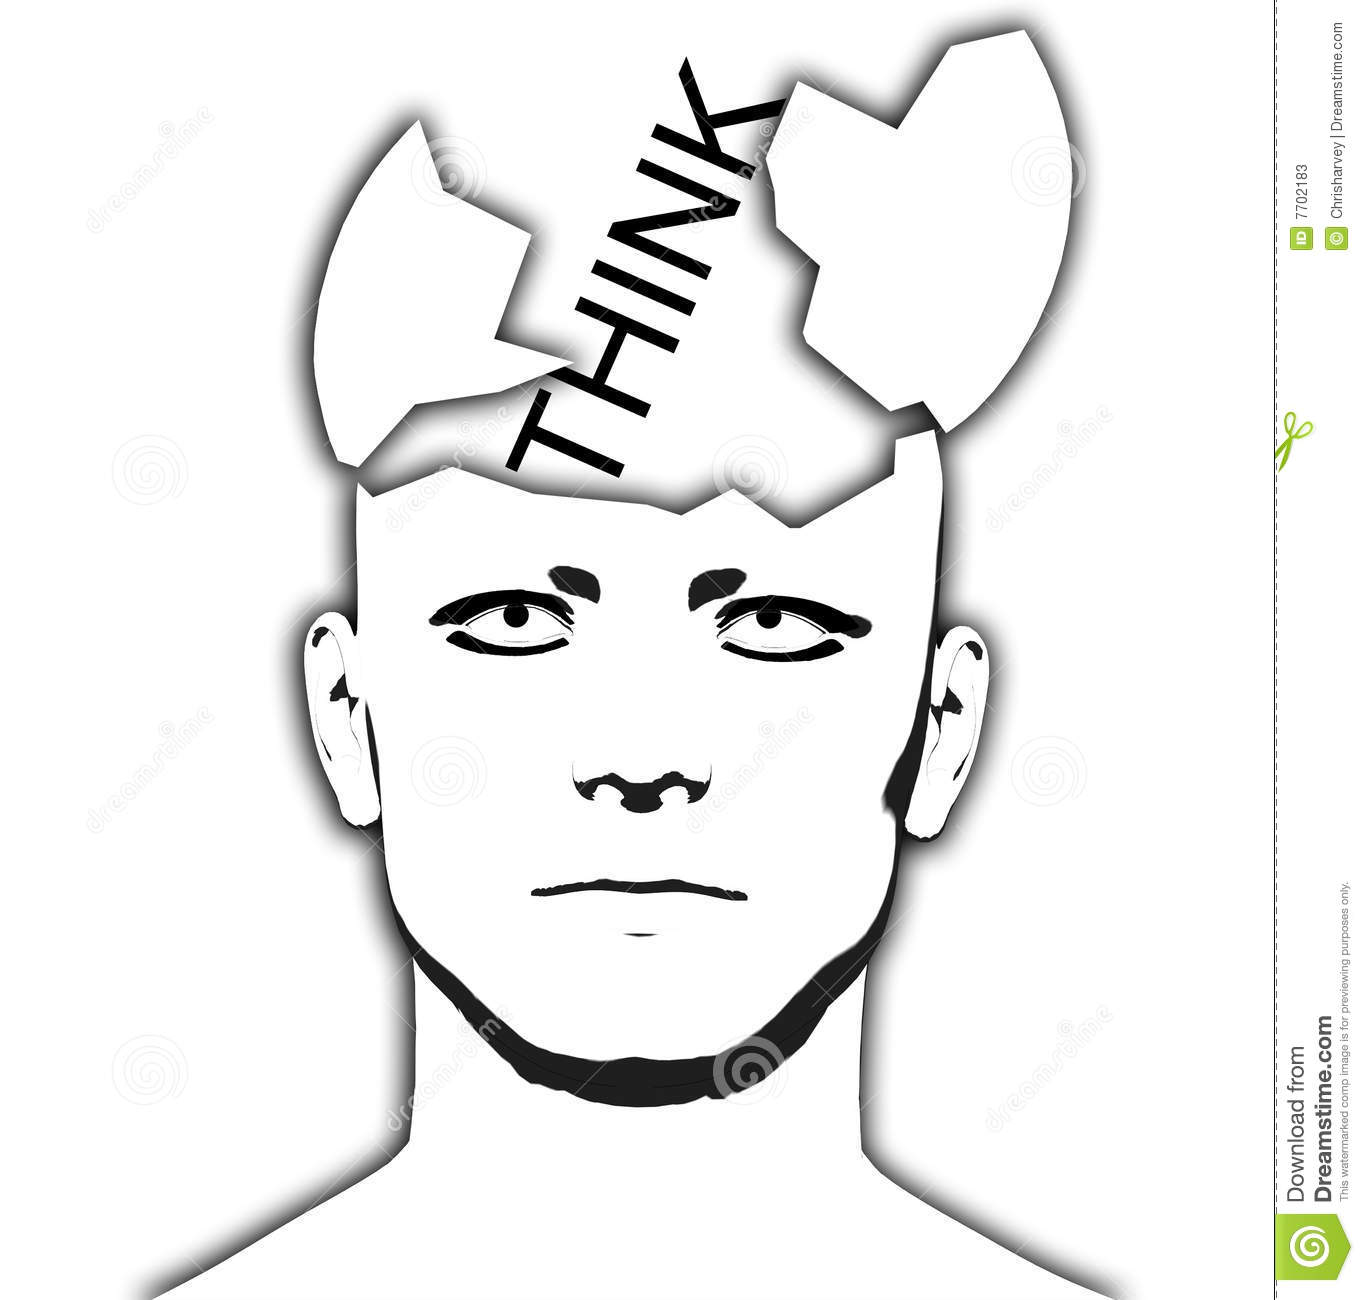 Ideas Coming Out Of Head Or Mind Cartoon Vector